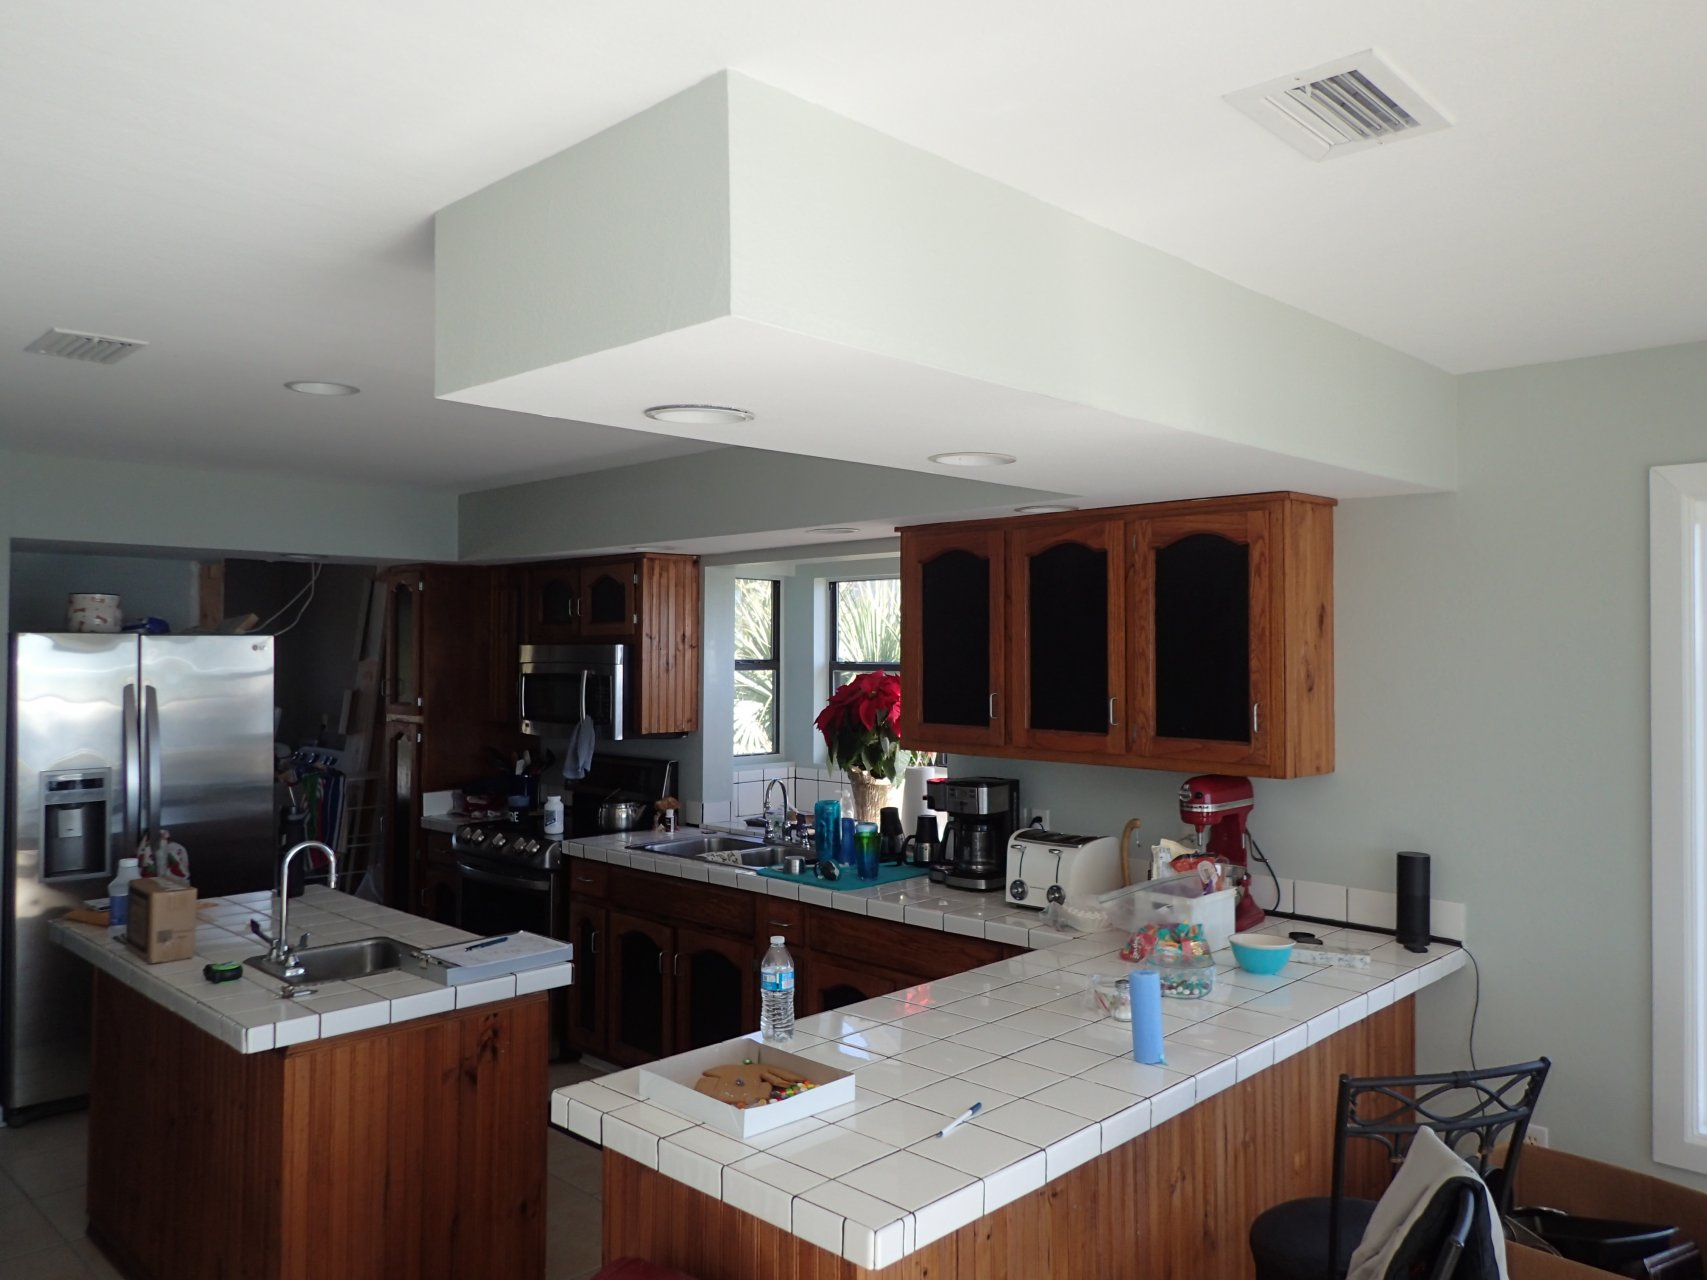 Gulf Breeze kitchen before remodeling by Cabinet Depot